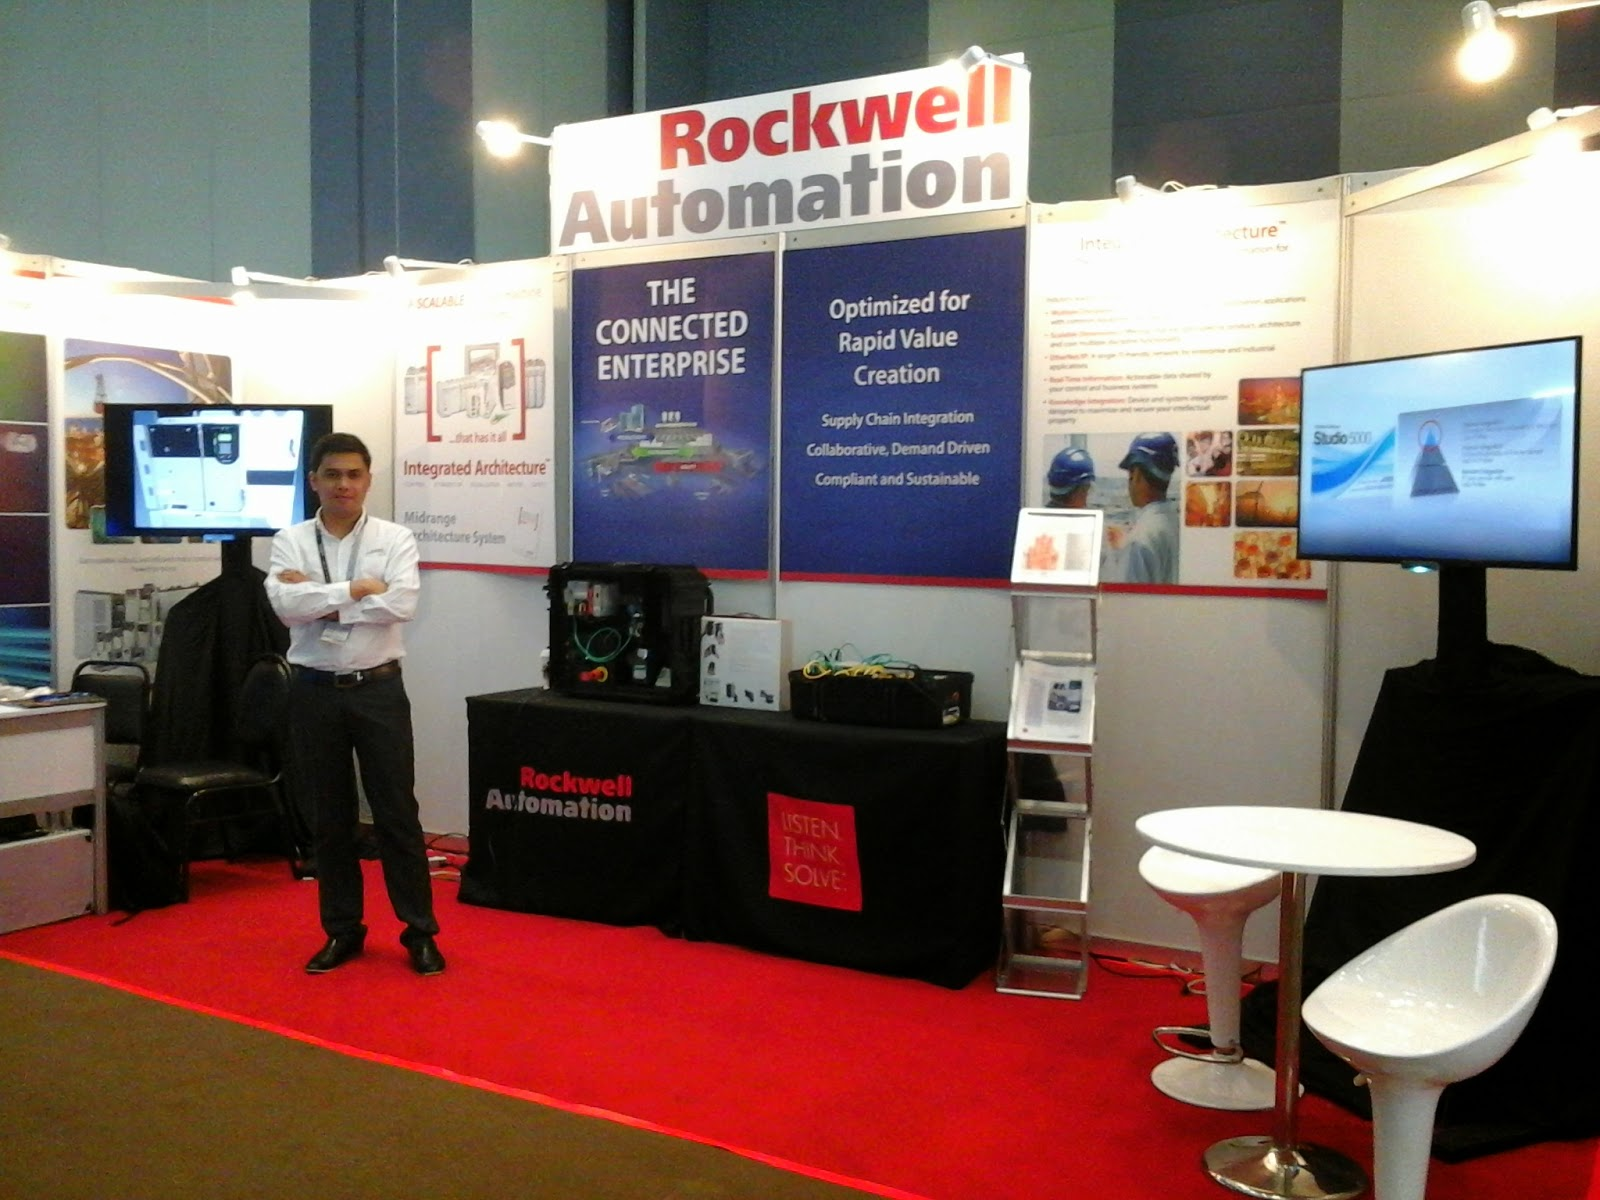 Rockwell Automation Exhibit Booth